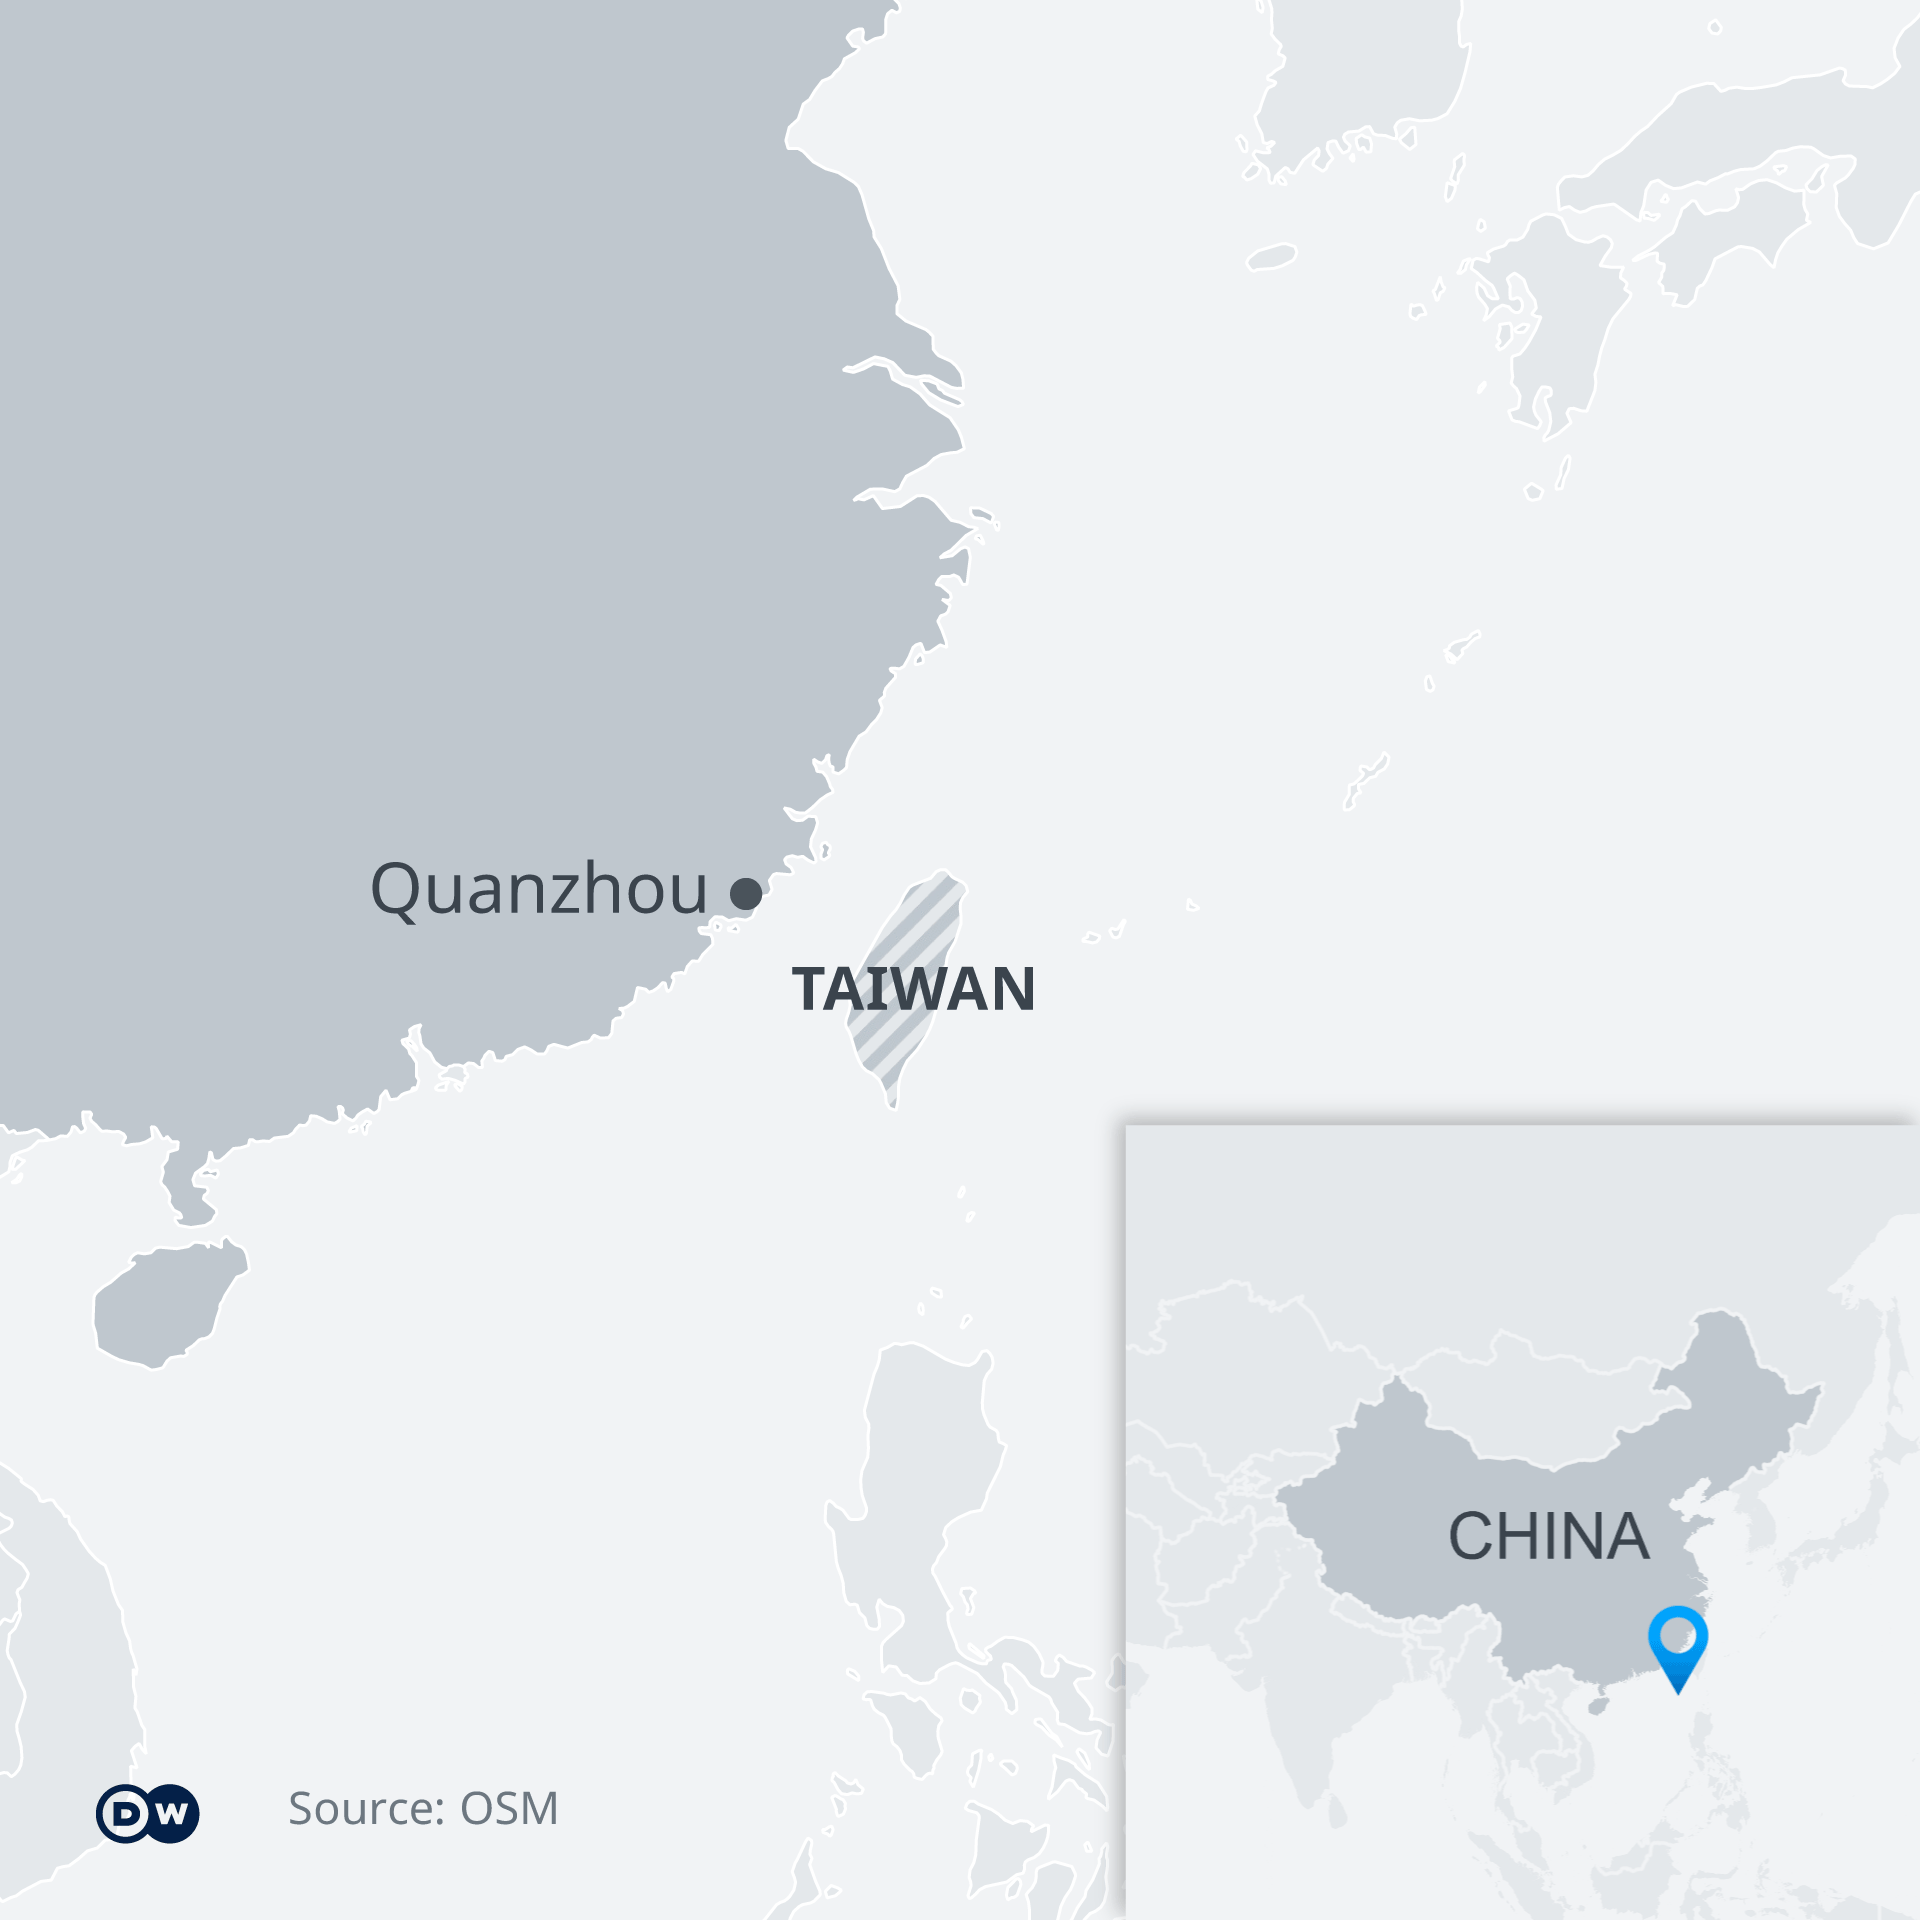 Map showing Quanzhou in China